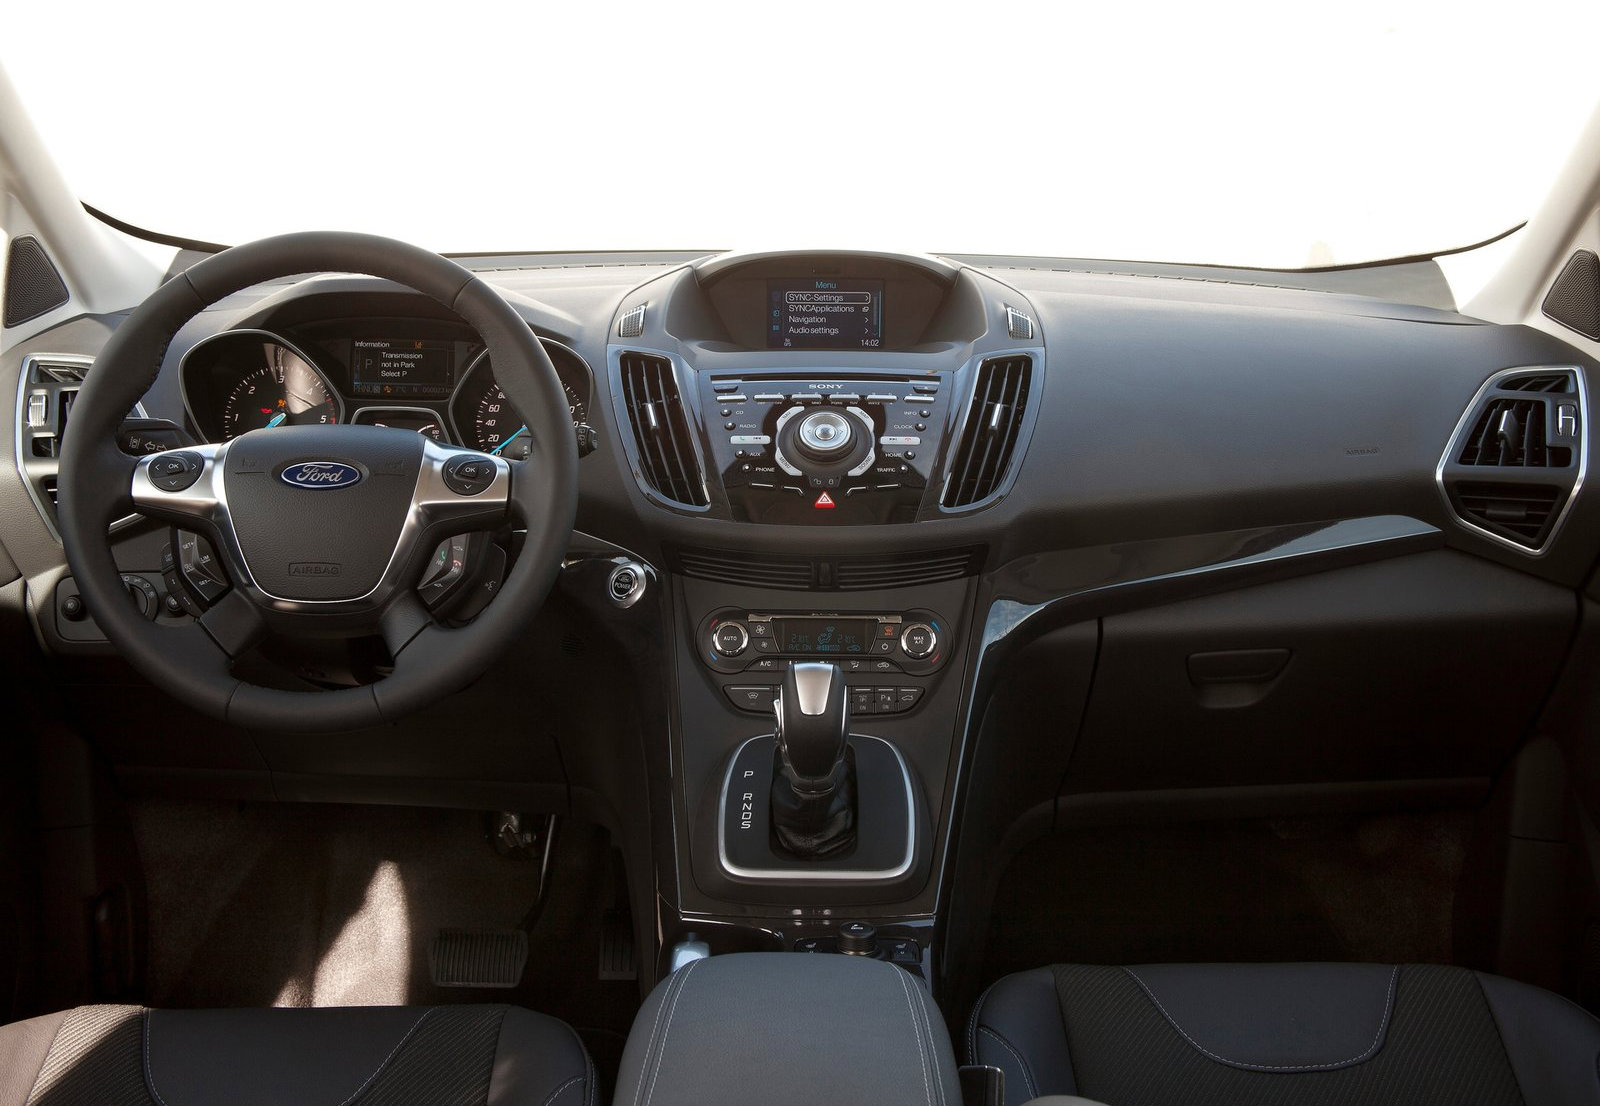 2015 Ford Kuga Upgrades Include Reworked 2.0 TDCi Turbo Diesel Engine ...